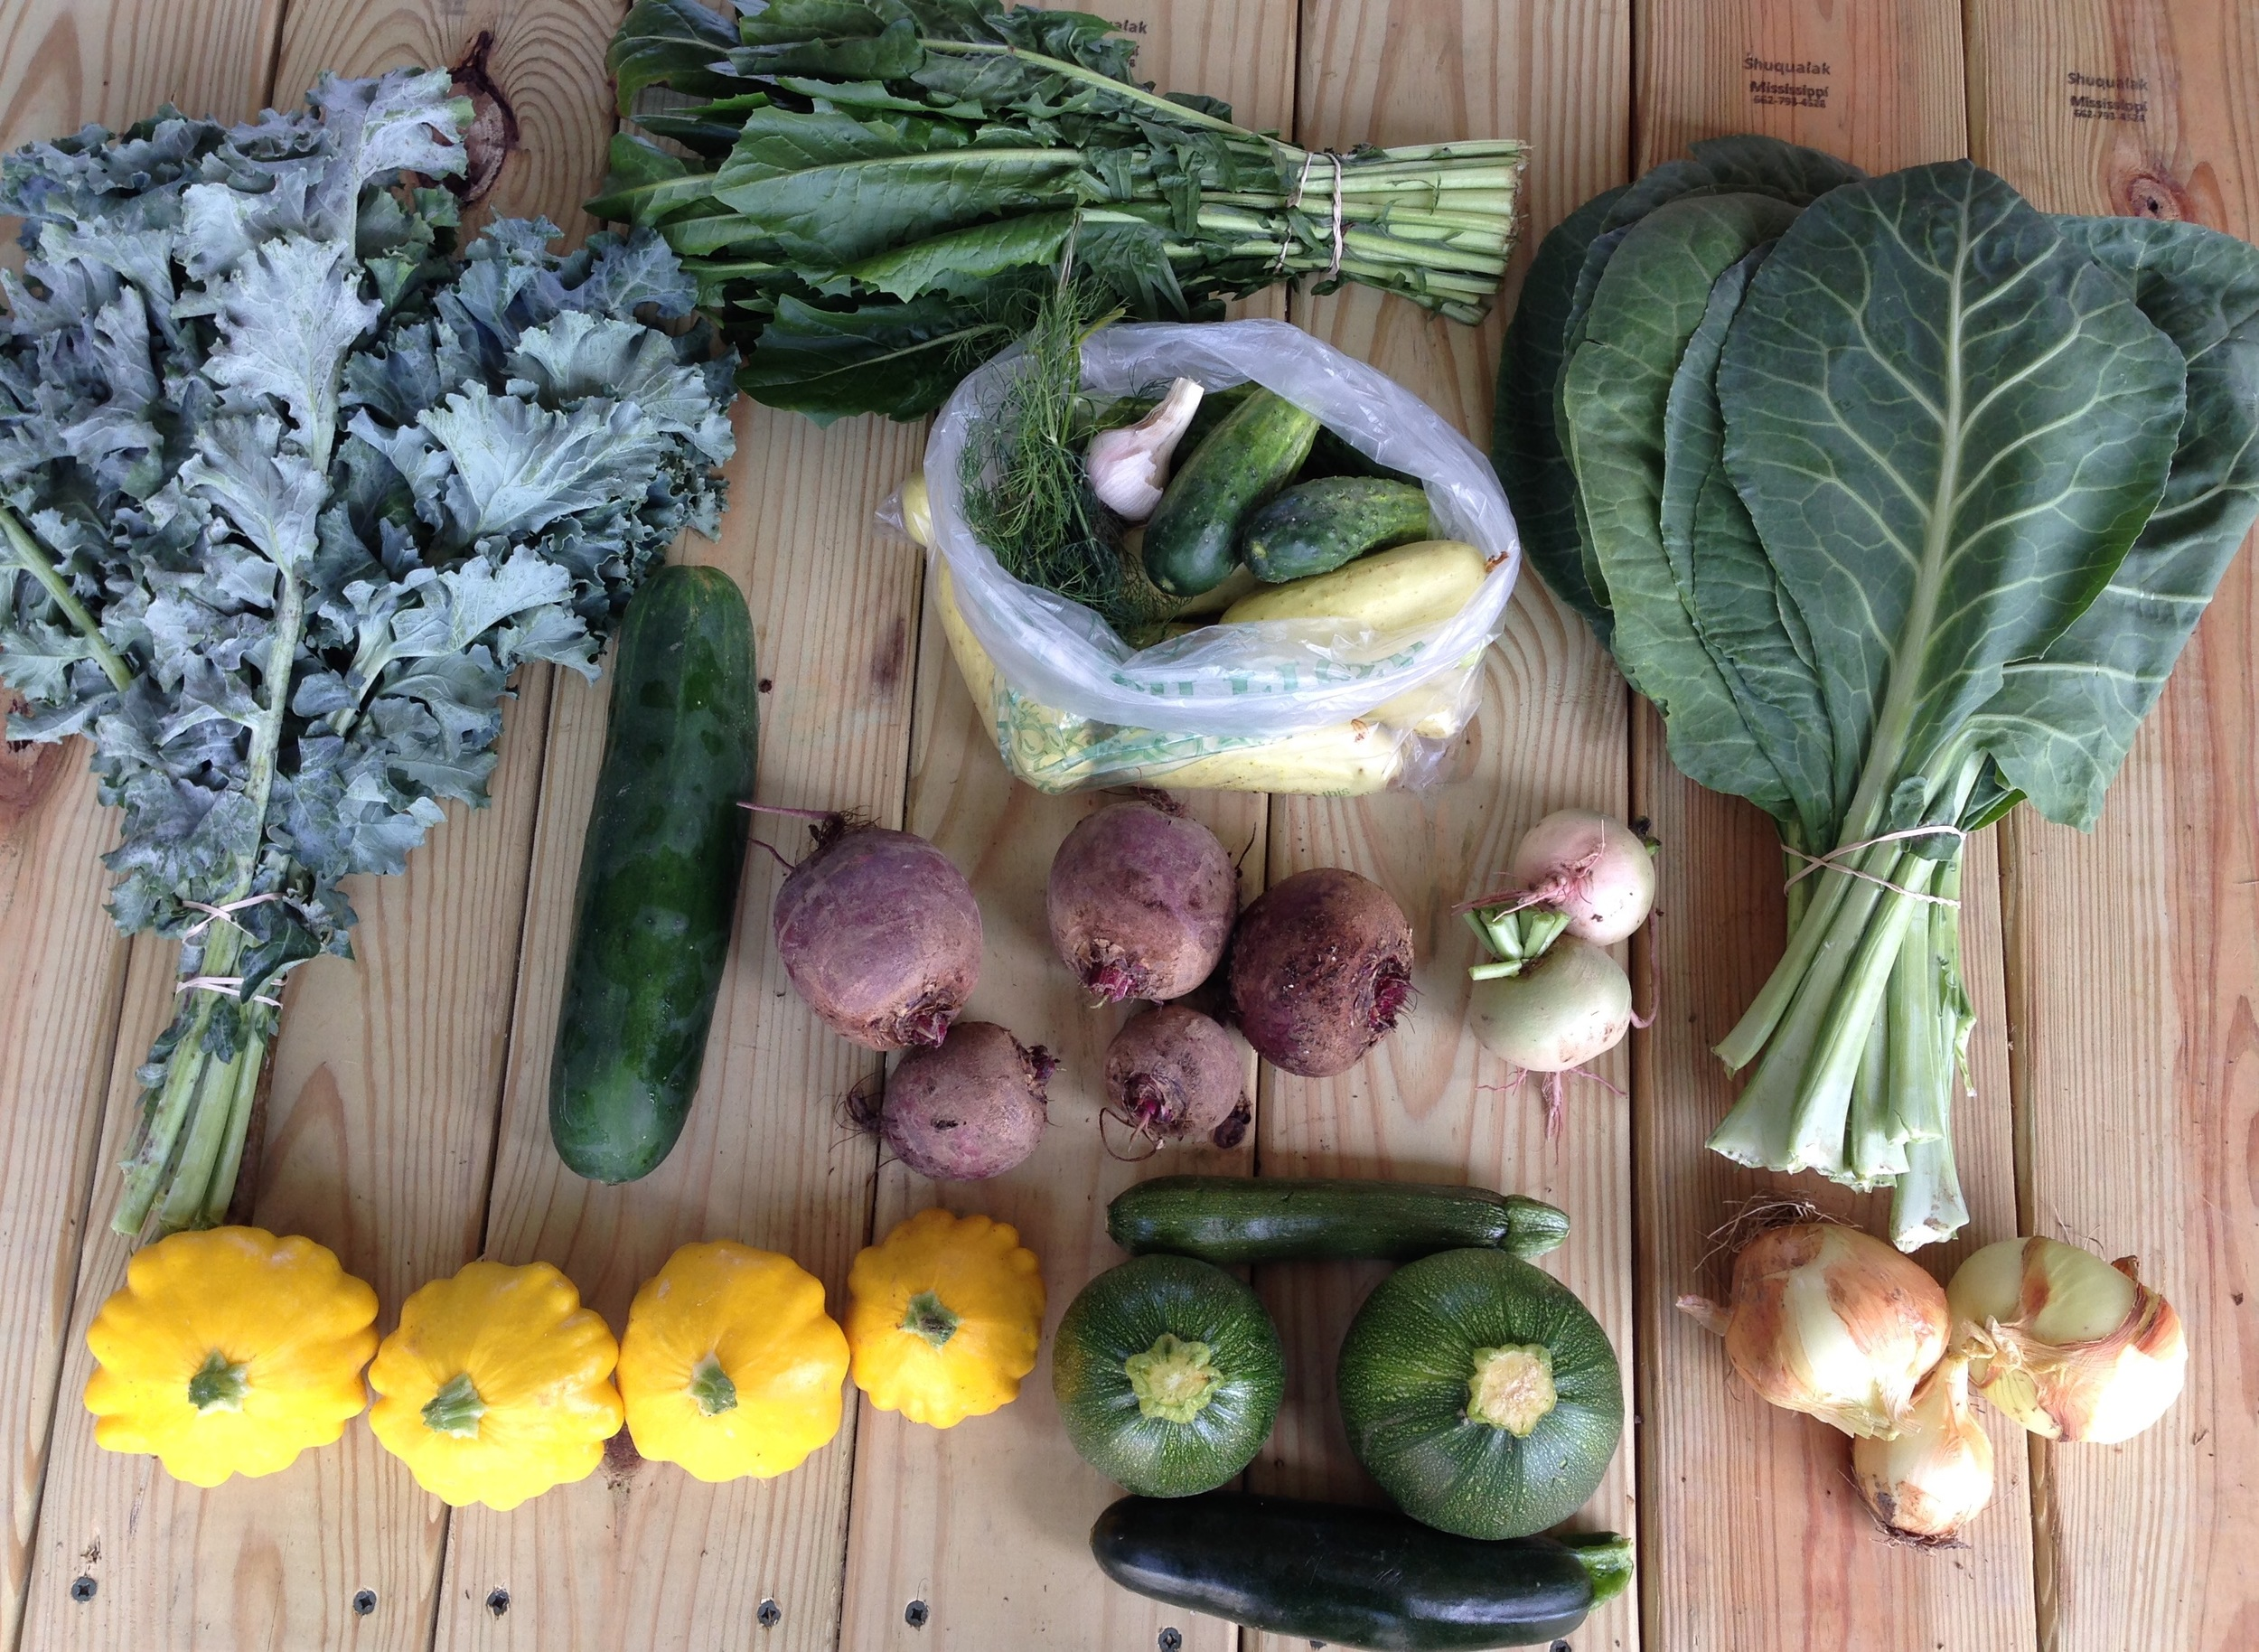 top left to right: kale, dandelion greens, and collards  middle left to right: slicing cucumber, bag of pickling cucumber with dill and garlic, beets, and radish  bottom left to right: yellow patty pan squash, round and straight zucchini, and dried onions